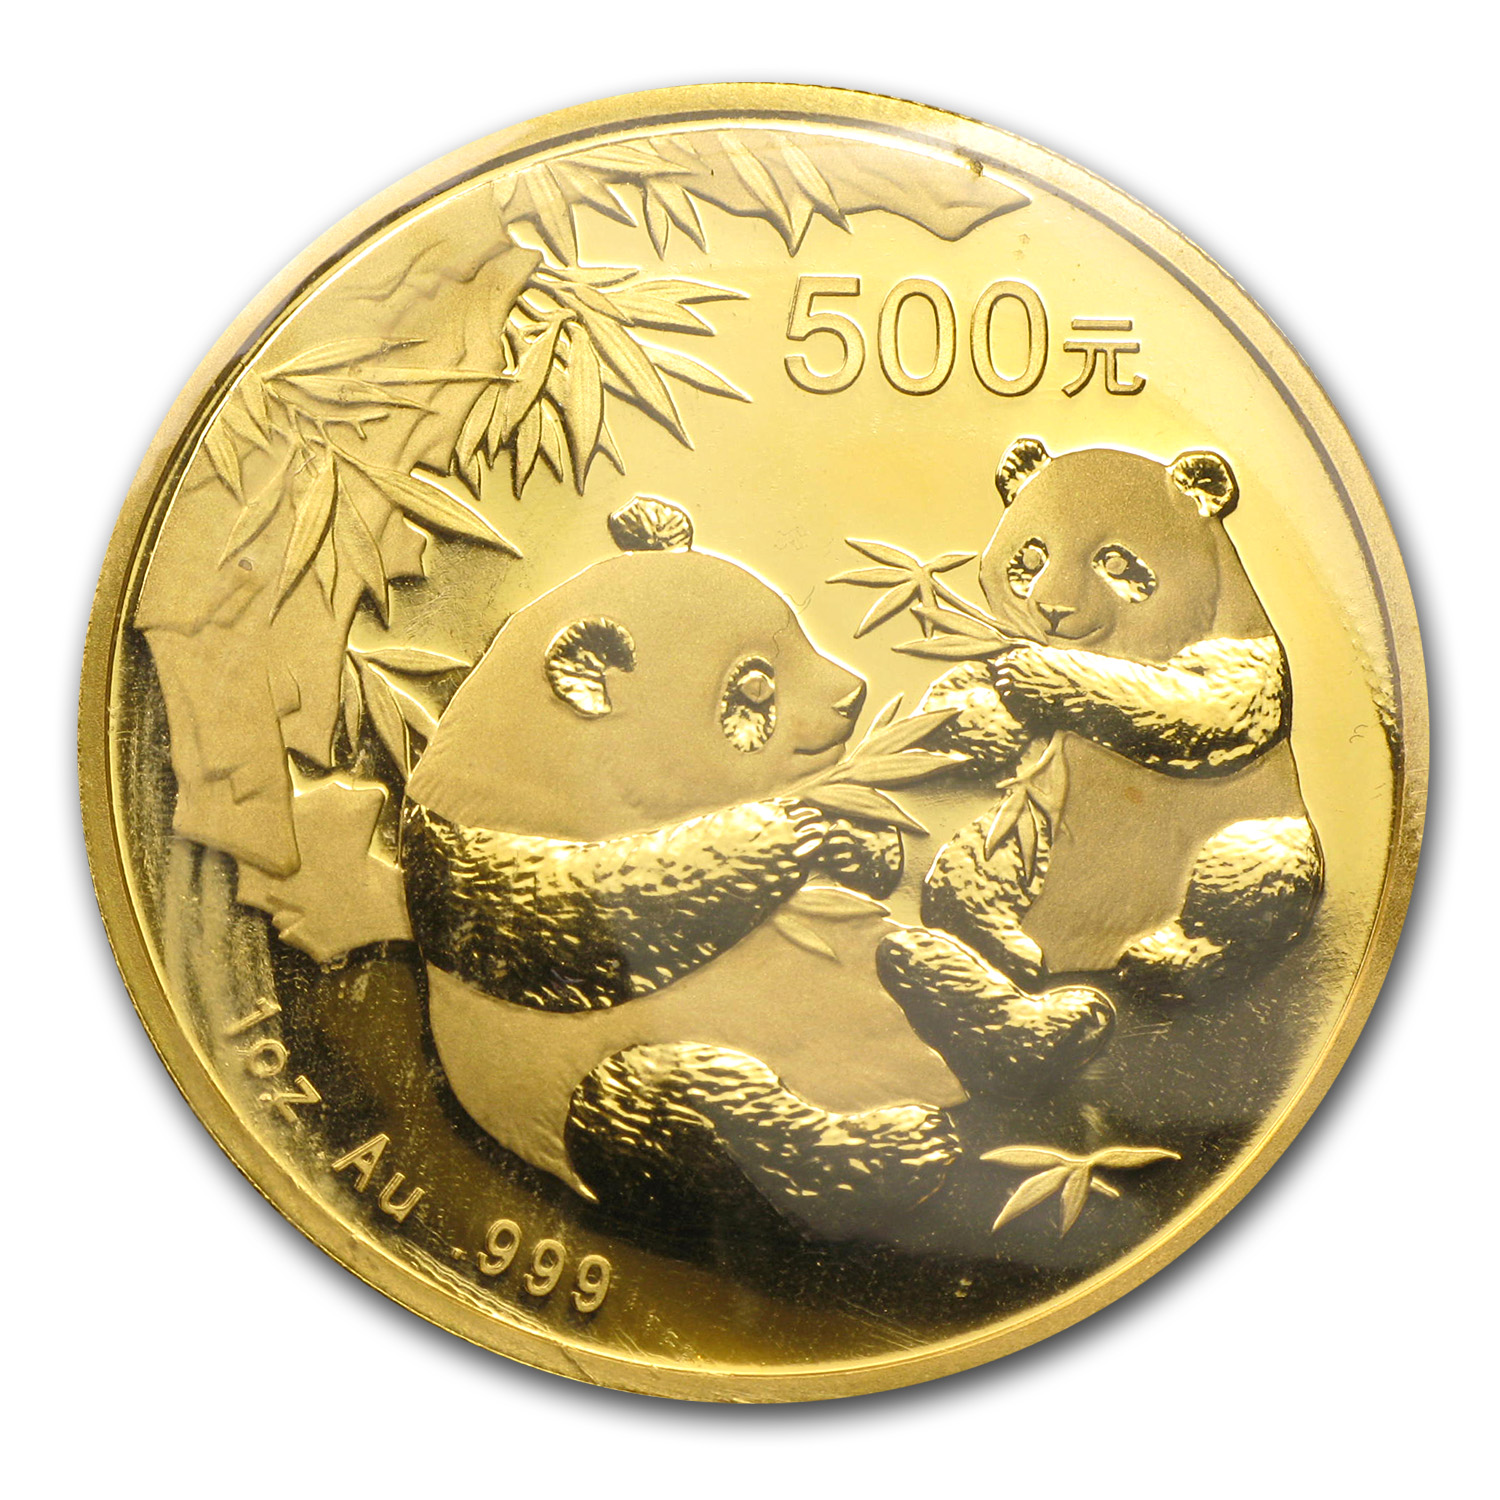 2006 1 oz Gold Chinese Panda (Sealed)